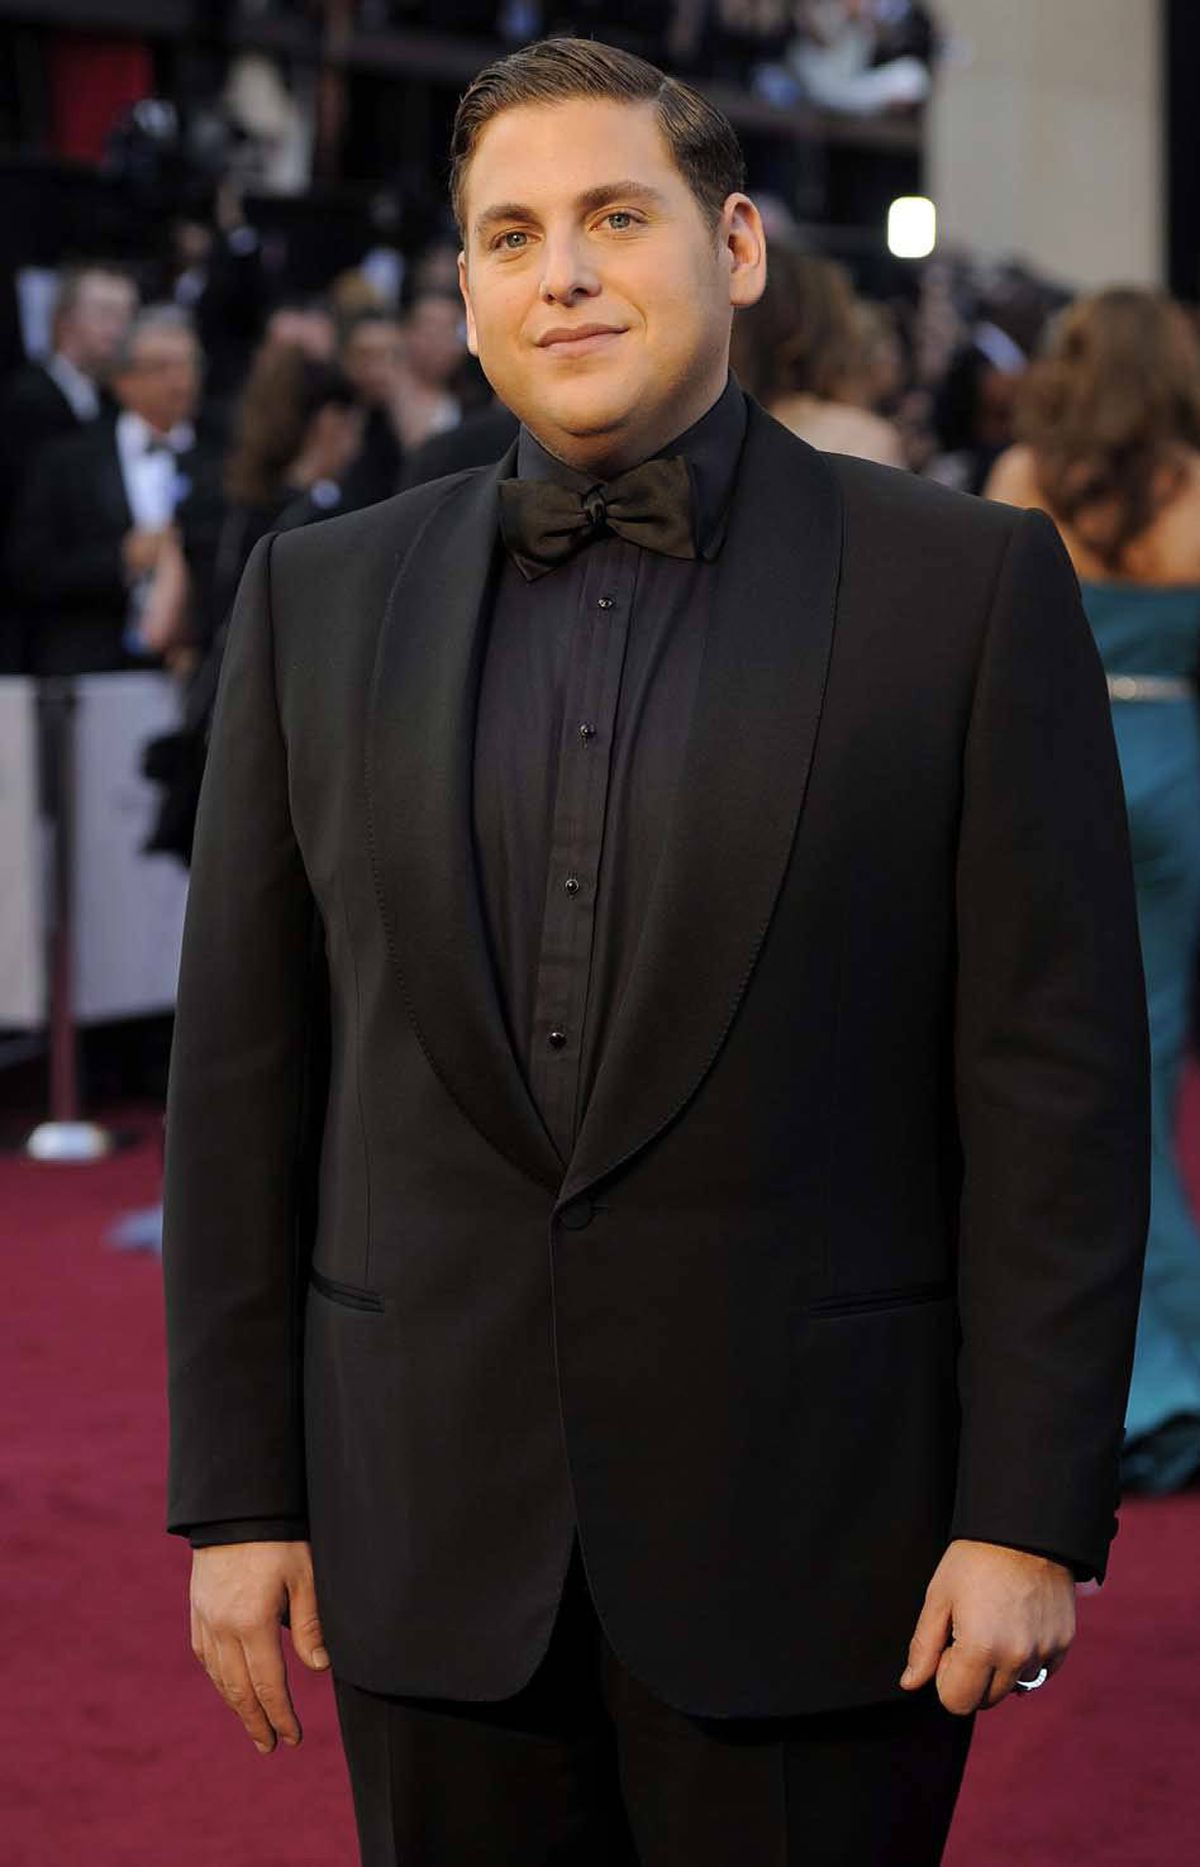 Hi, I'm Jonah Hill and I'll be your unctuous maitre d' tonight.